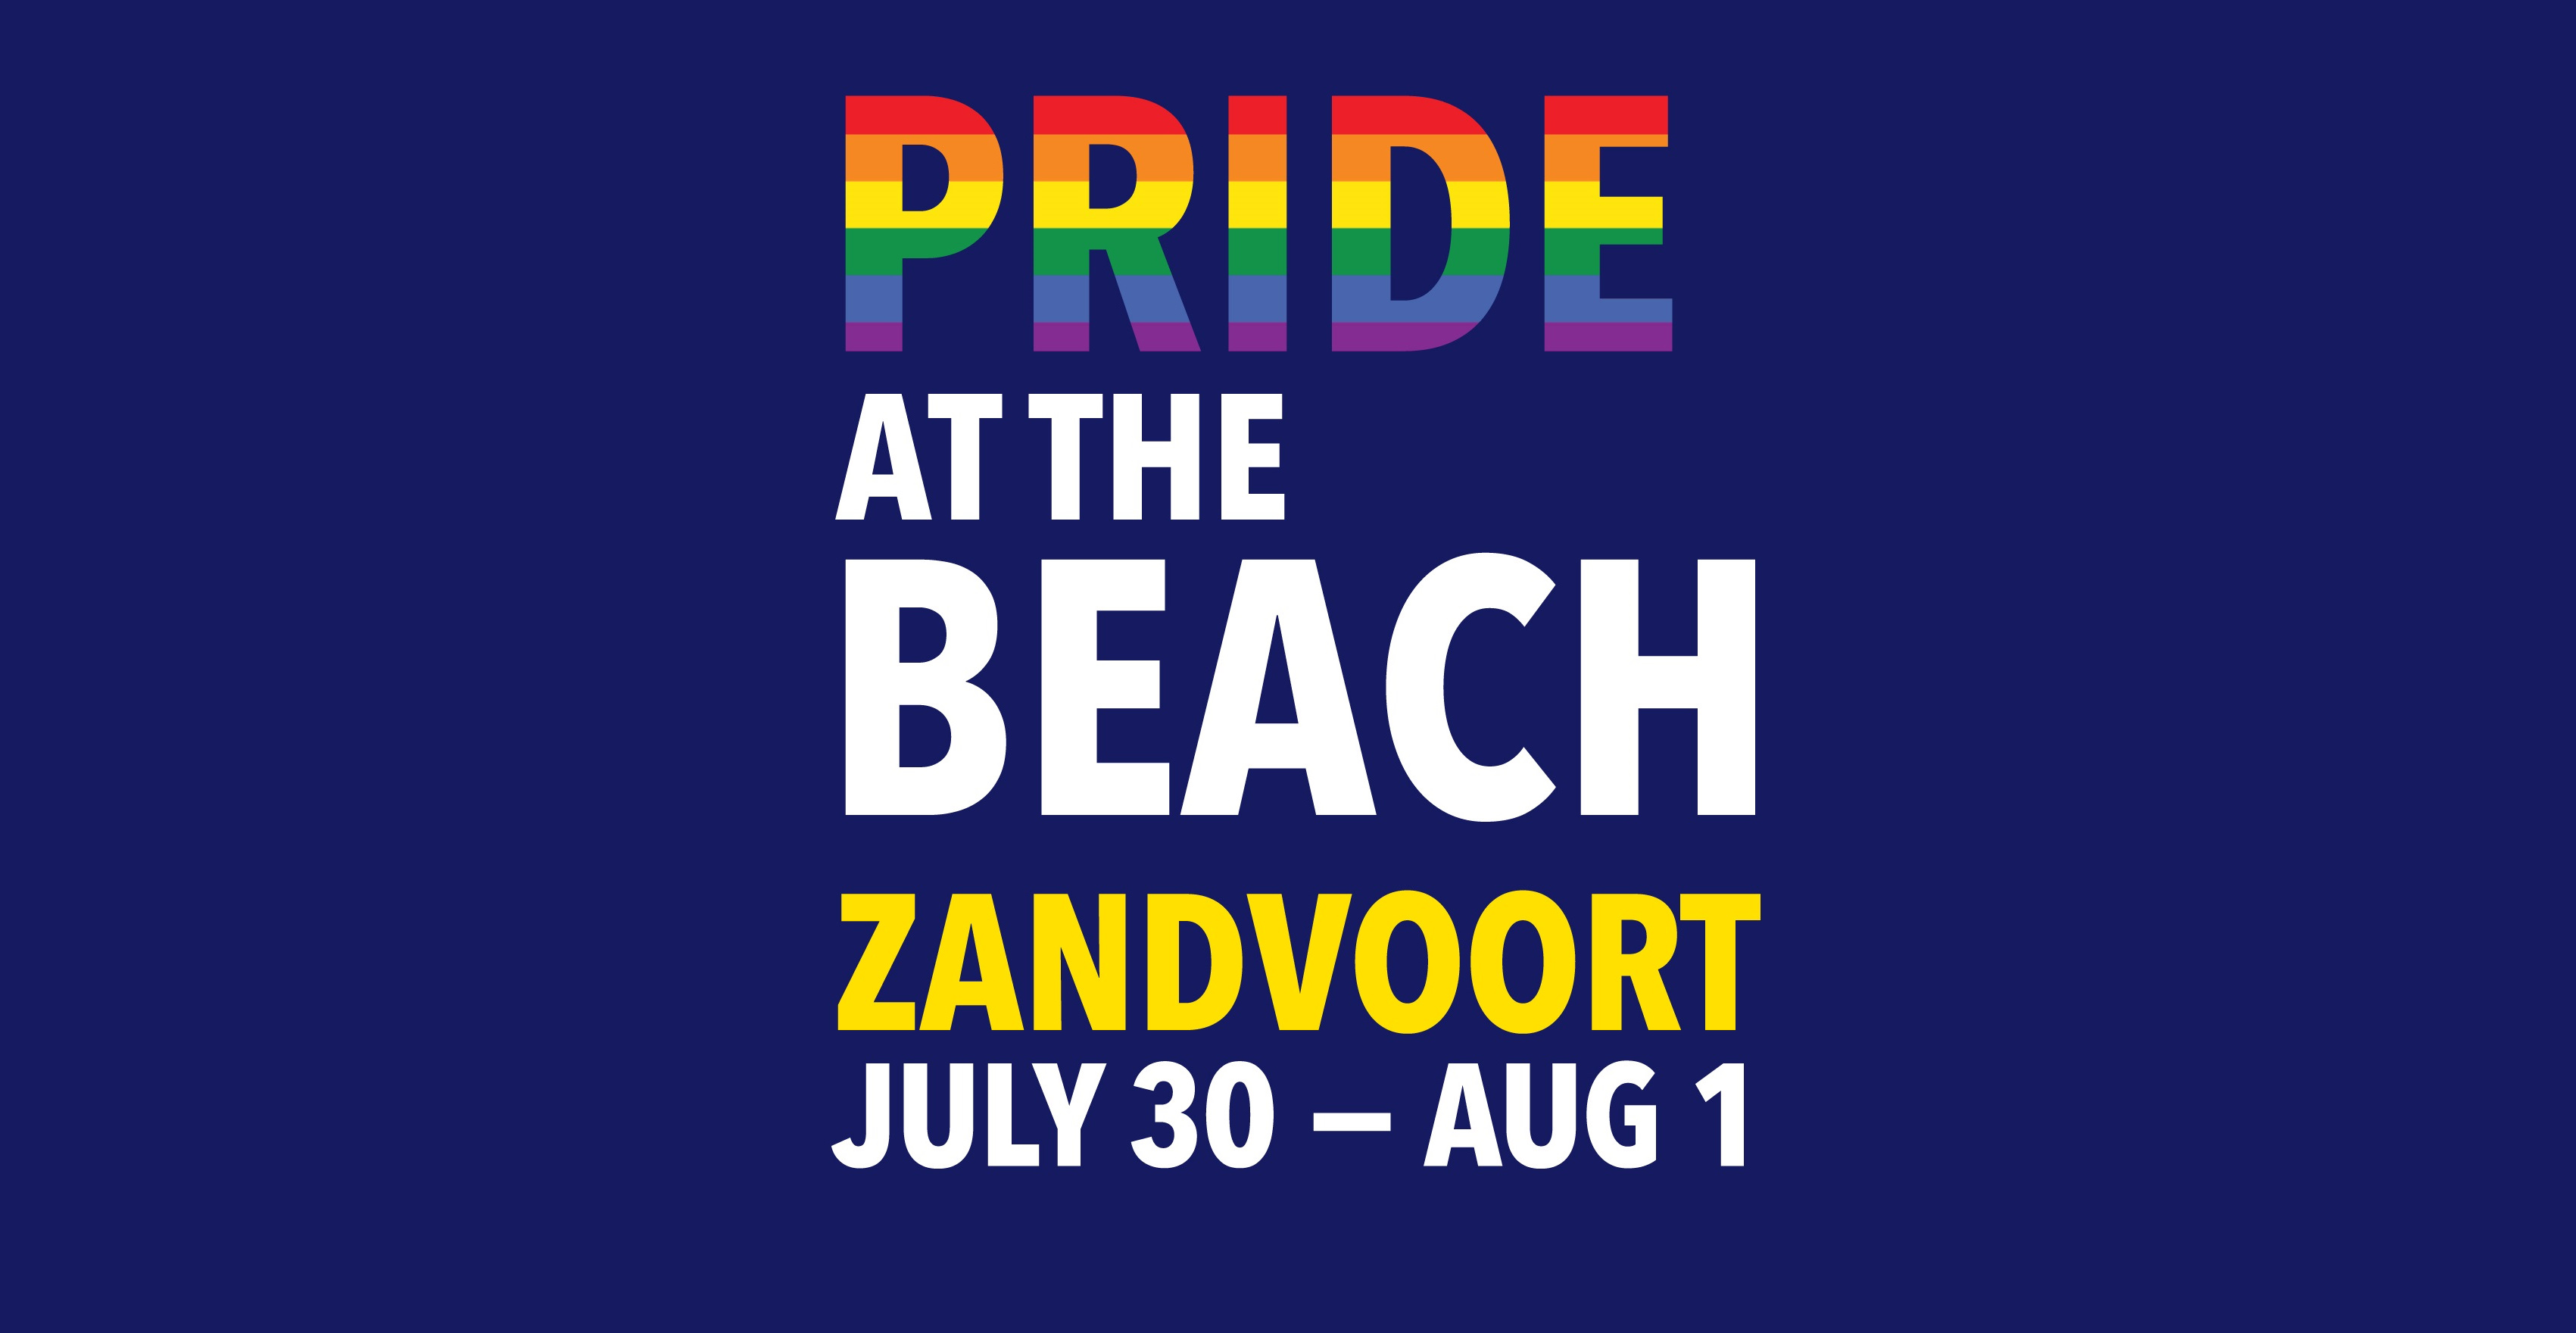 Pride at the Beach 2018